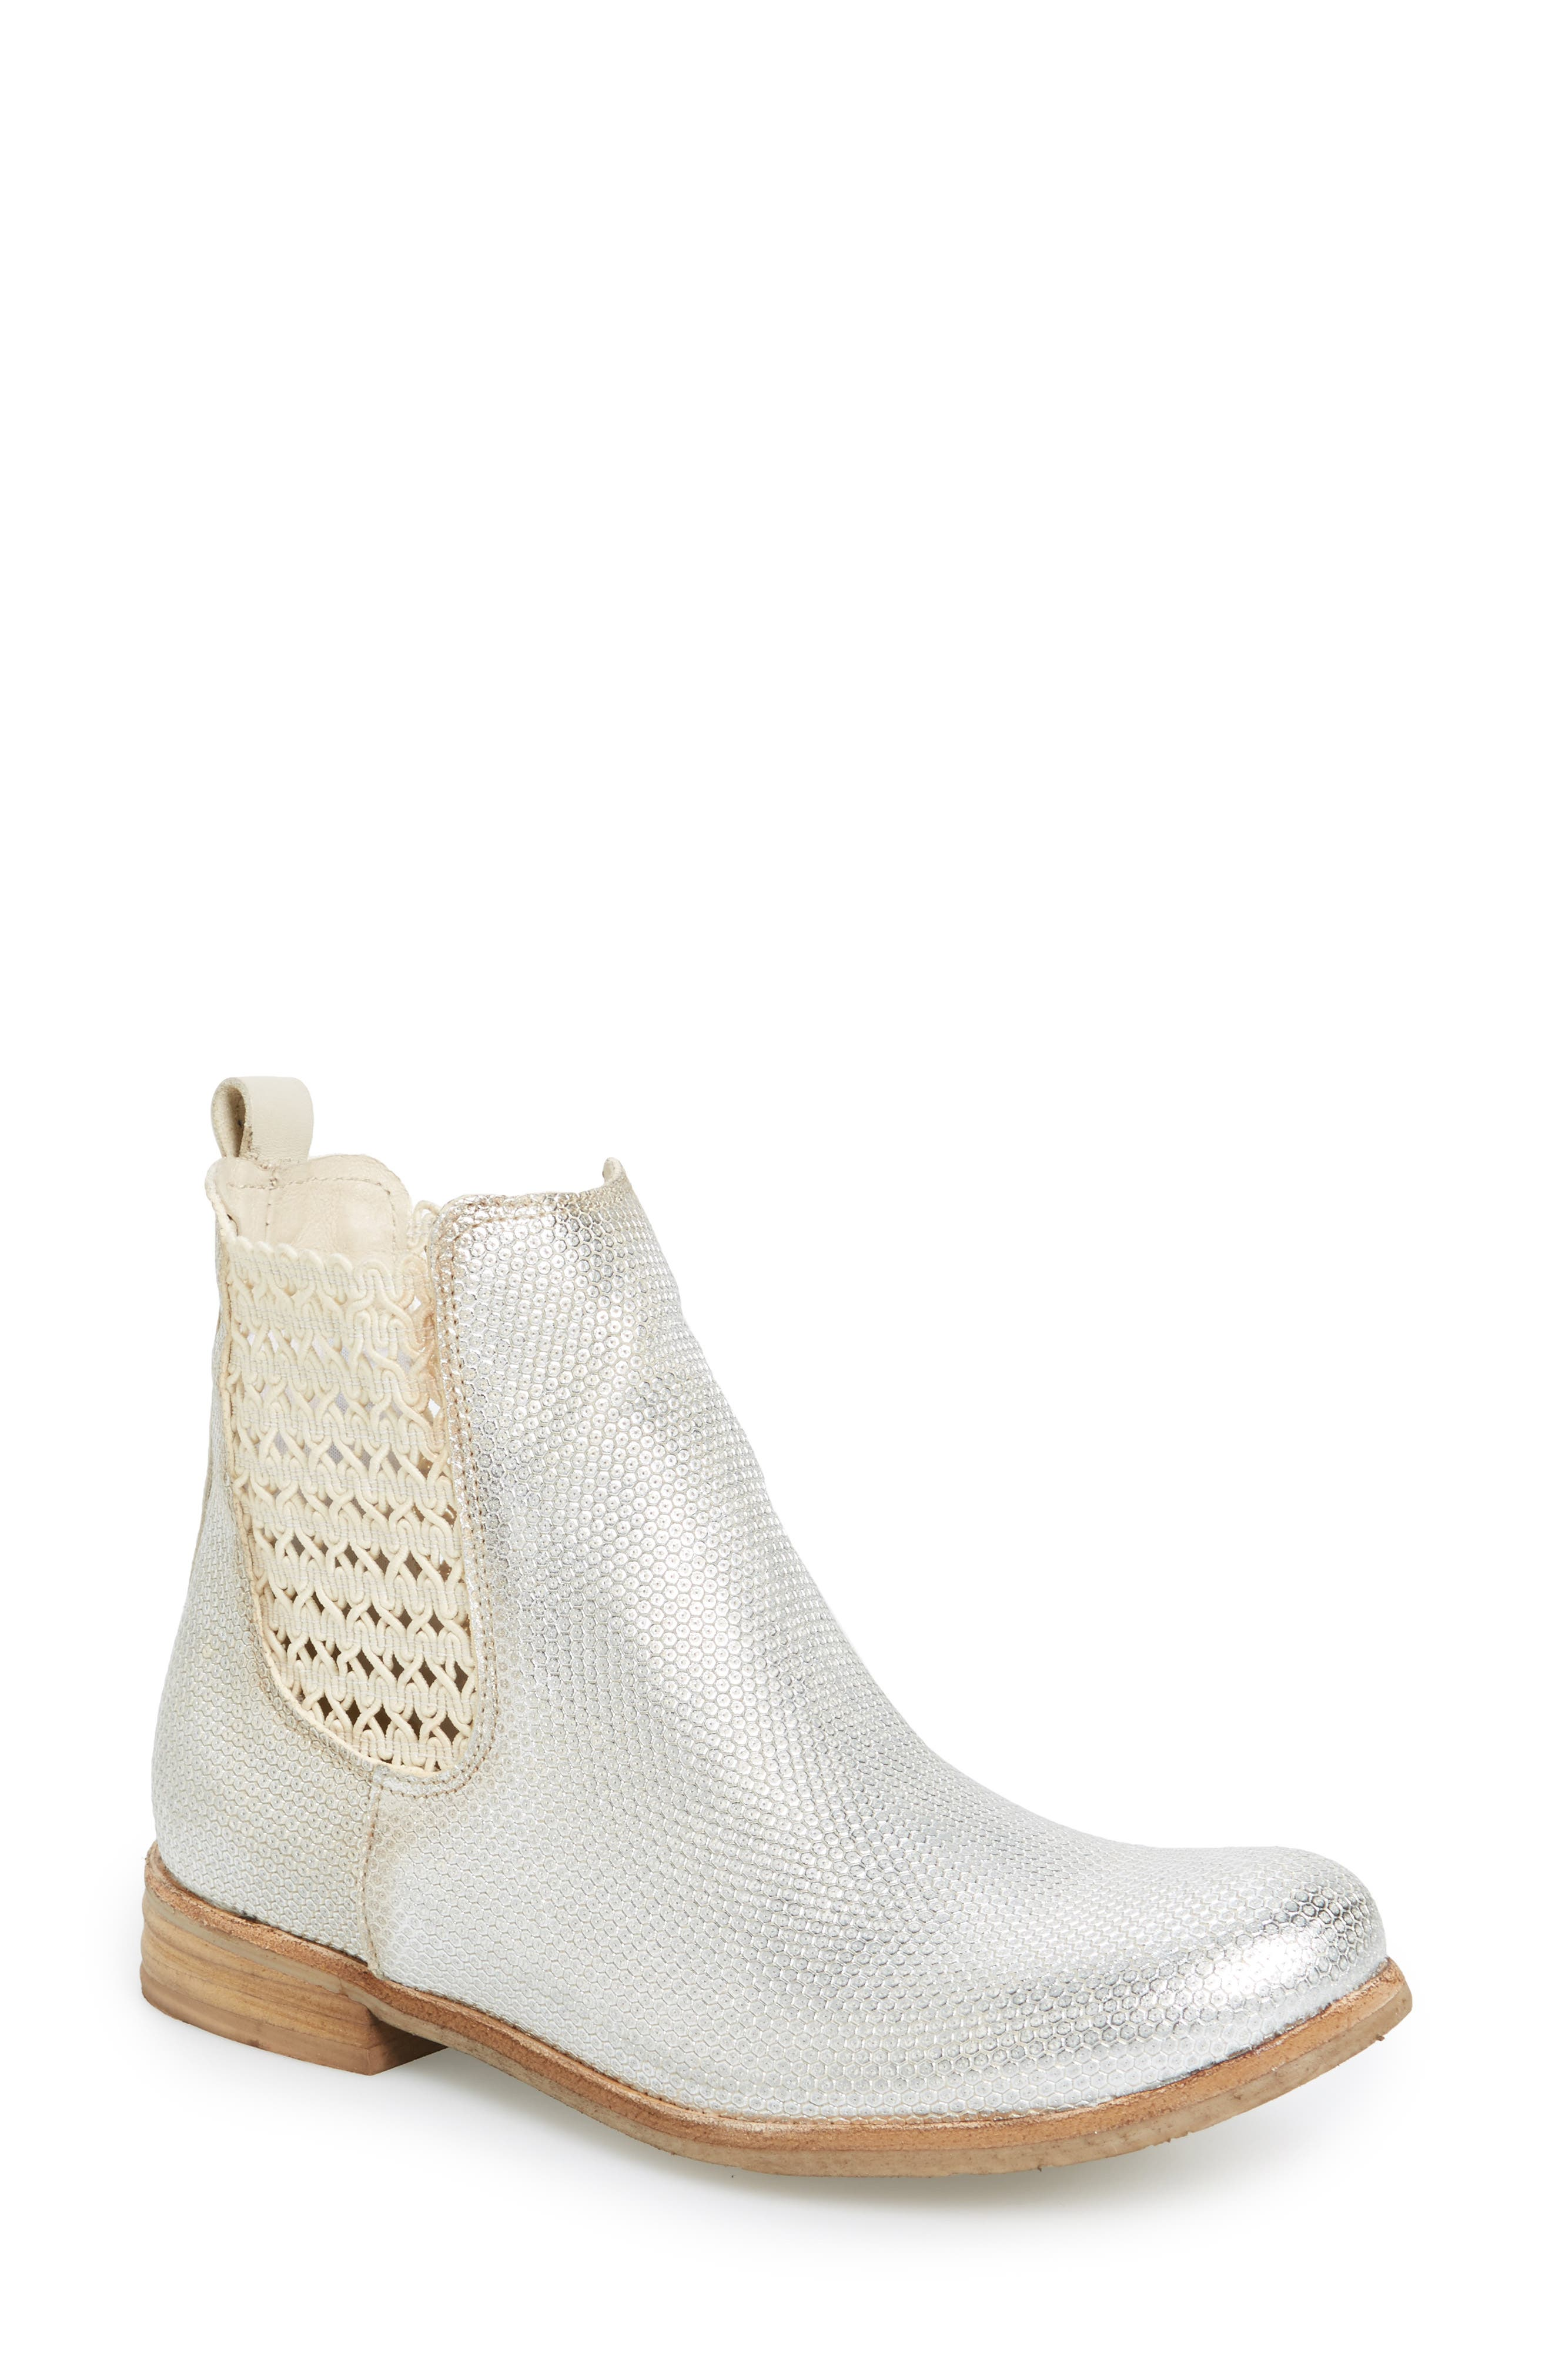 Flicker Boot,                             Main thumbnail 1, color,                             Off White/ Silver Leather